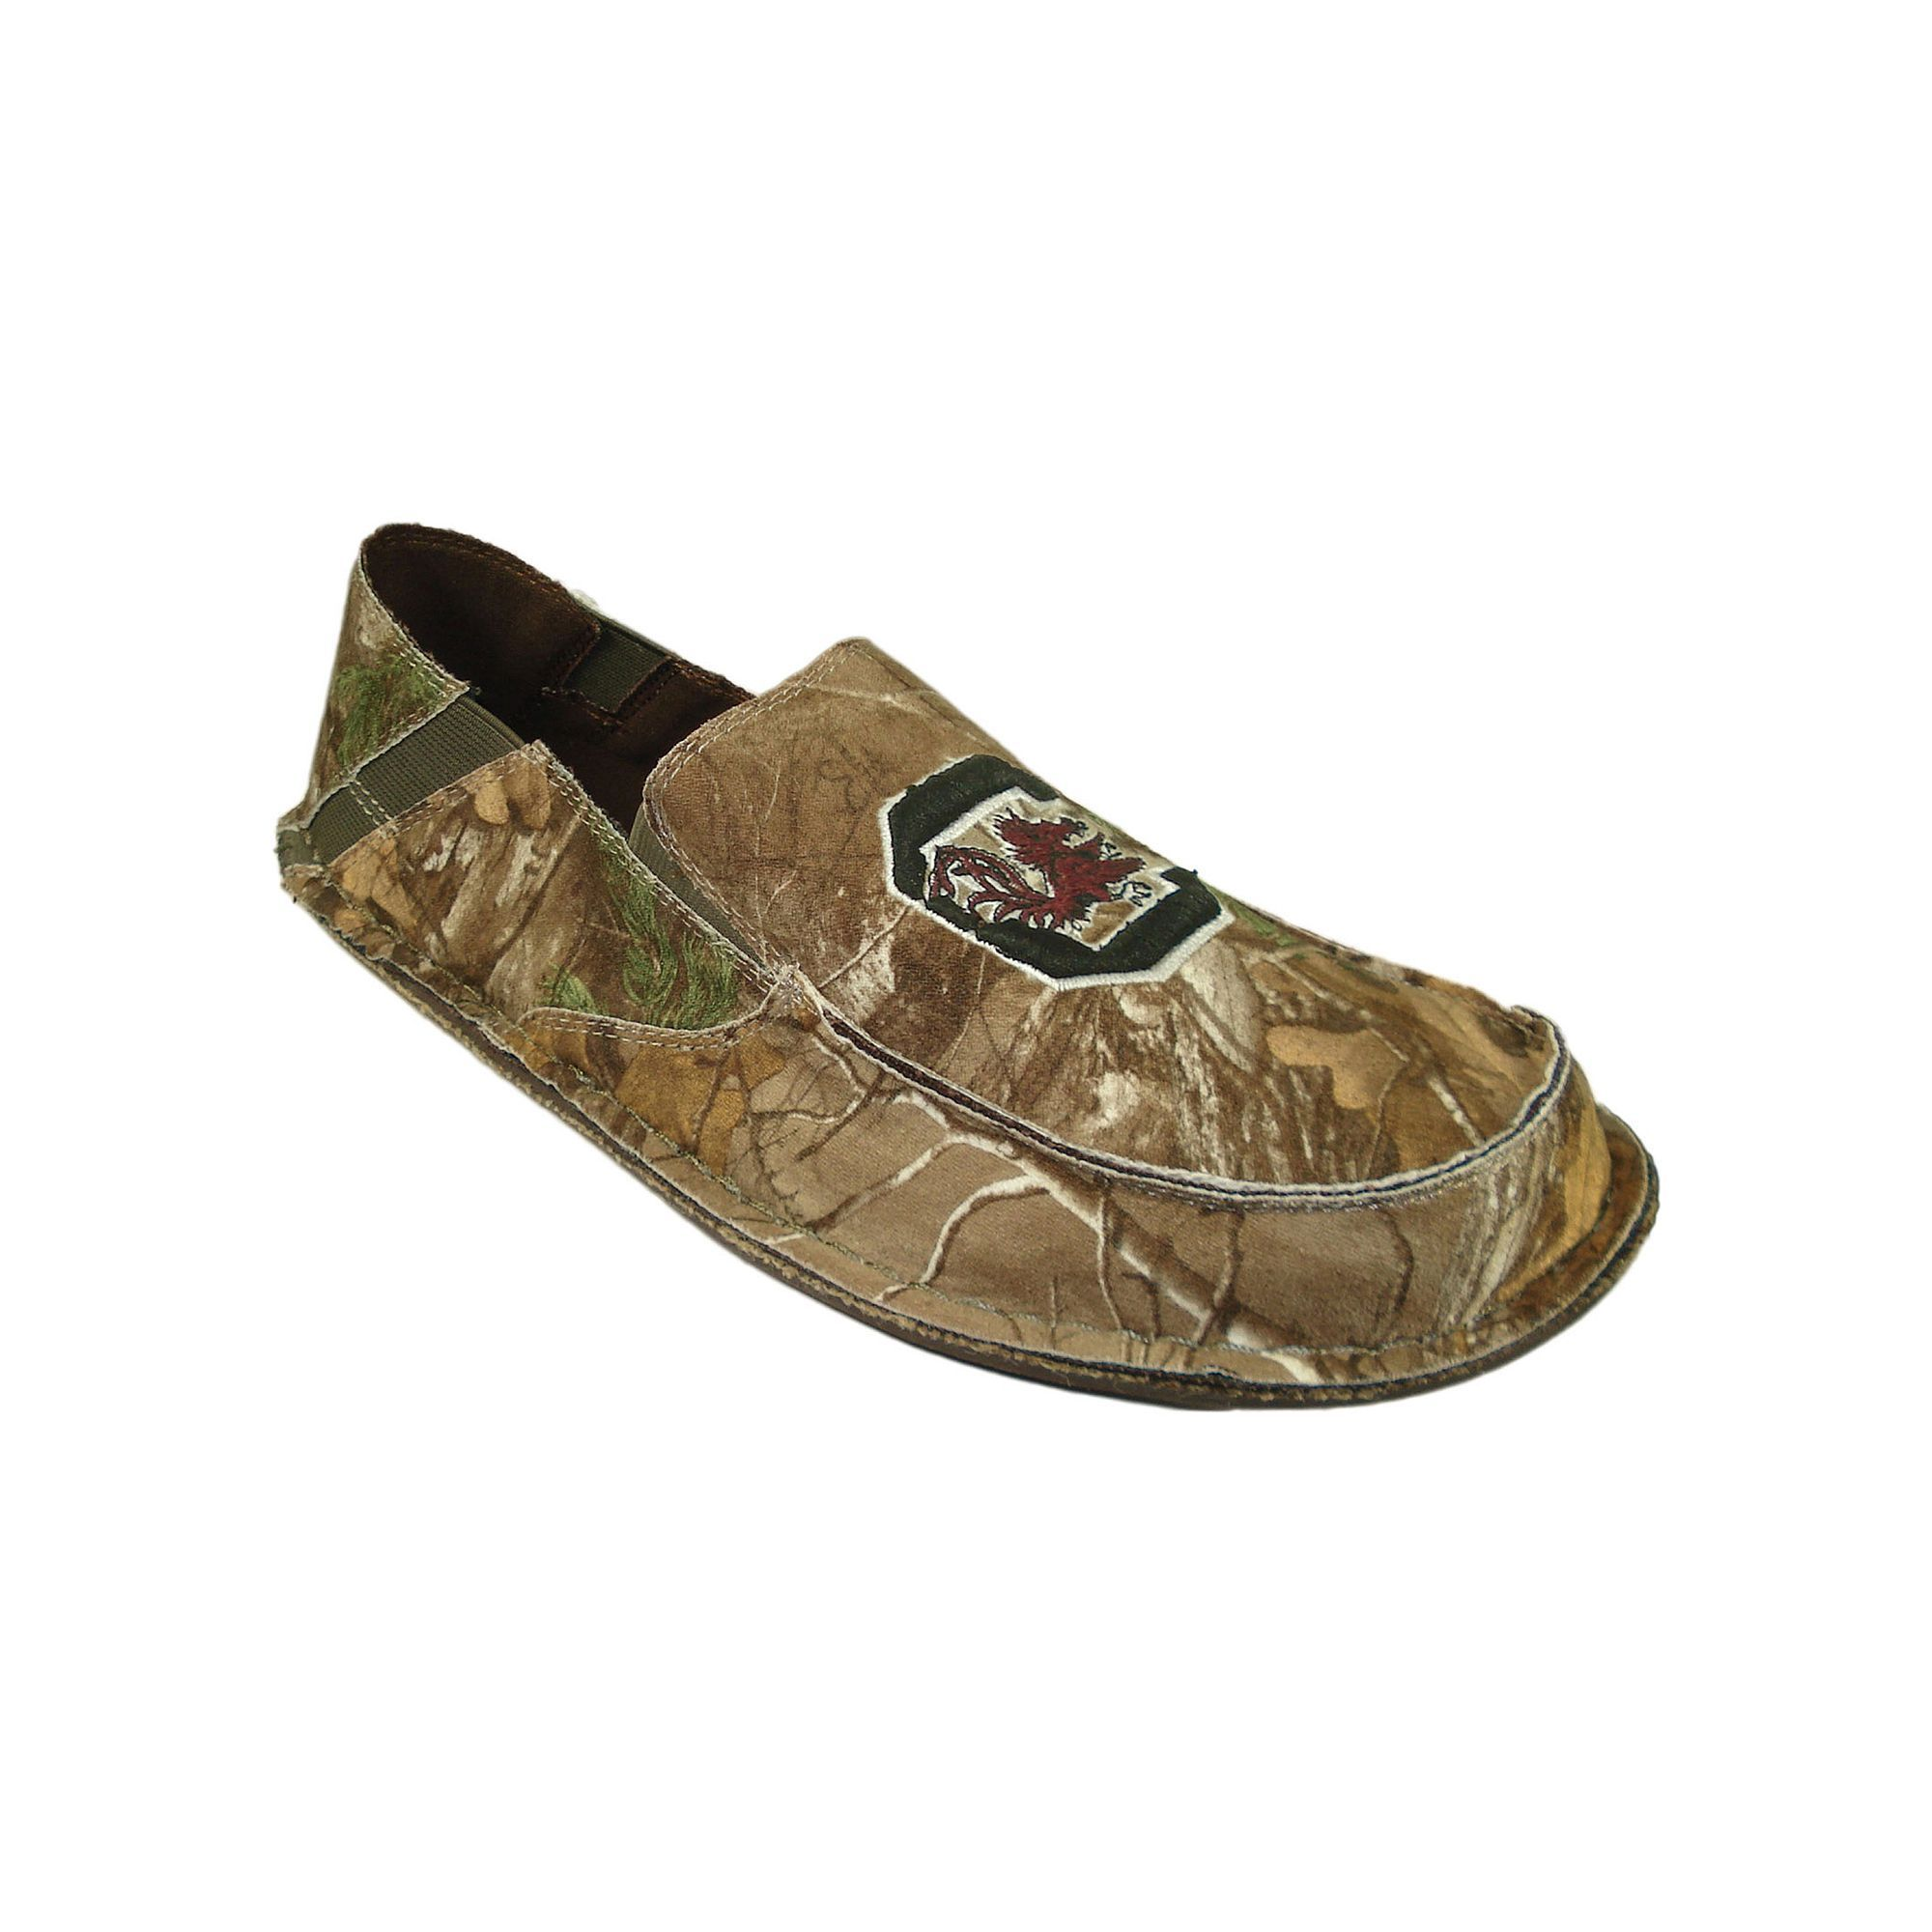 Mens South Carolina Gamecocks Cazulle Realtree Camouflage Canvas Loafers Size 10 Multicolor